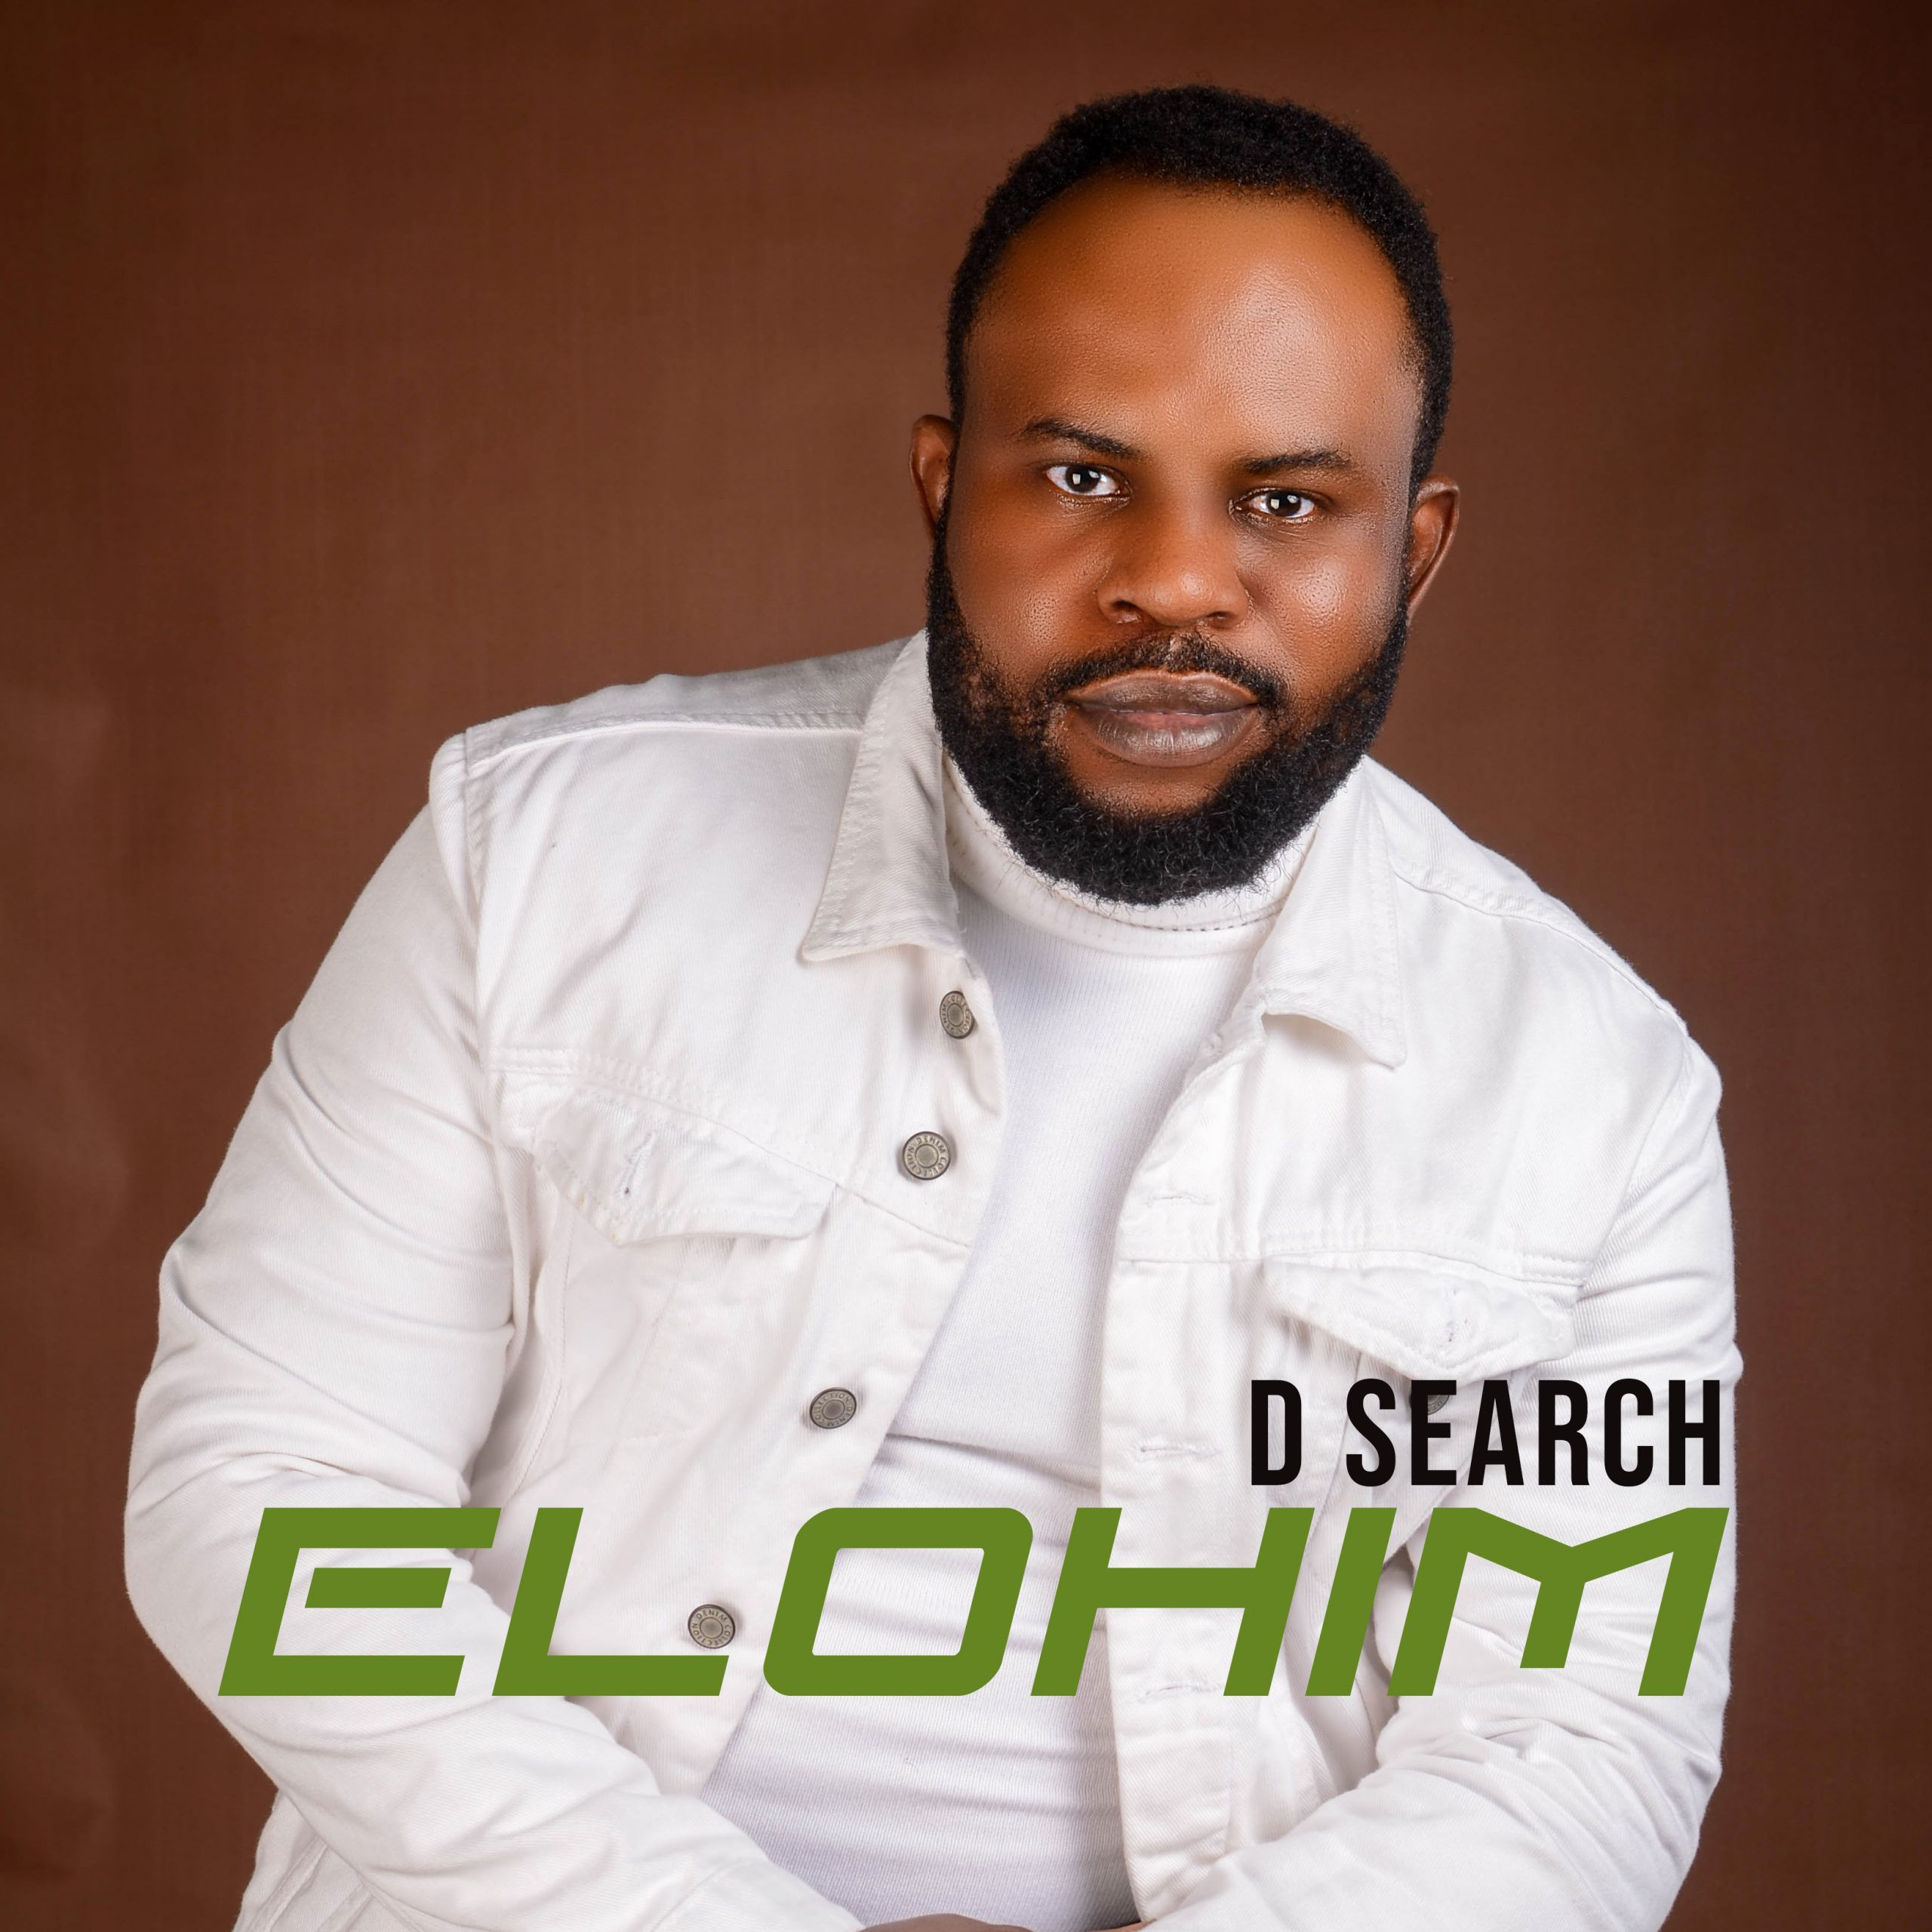 """Anointed gospel music minister D Search has released a new single titled """"Elohim""""."""